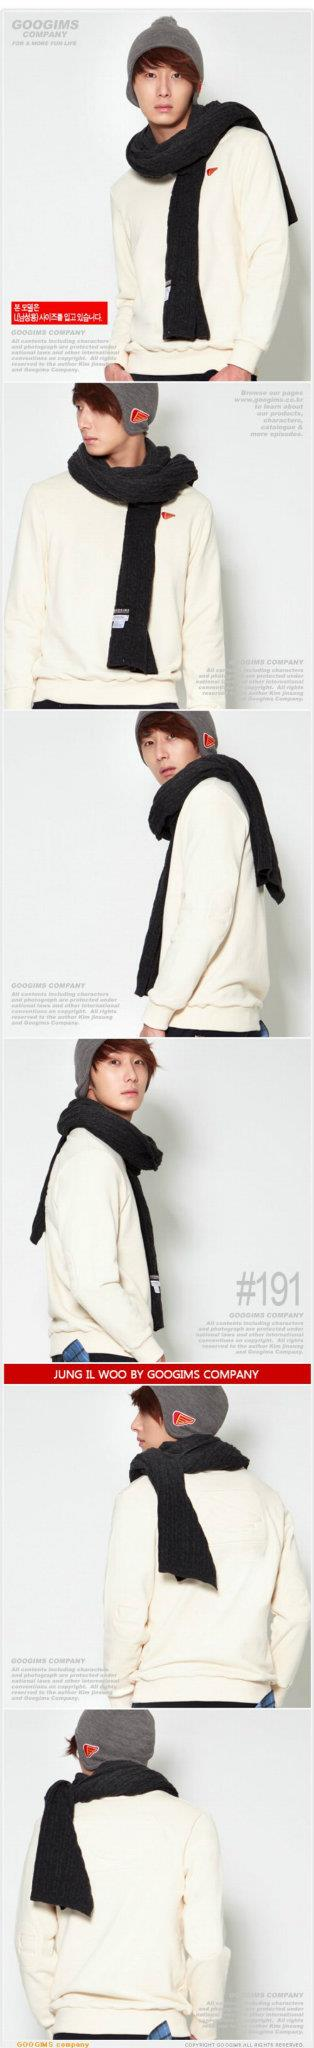 2011 10 Jung II-woo for Googims. Part 3 00014